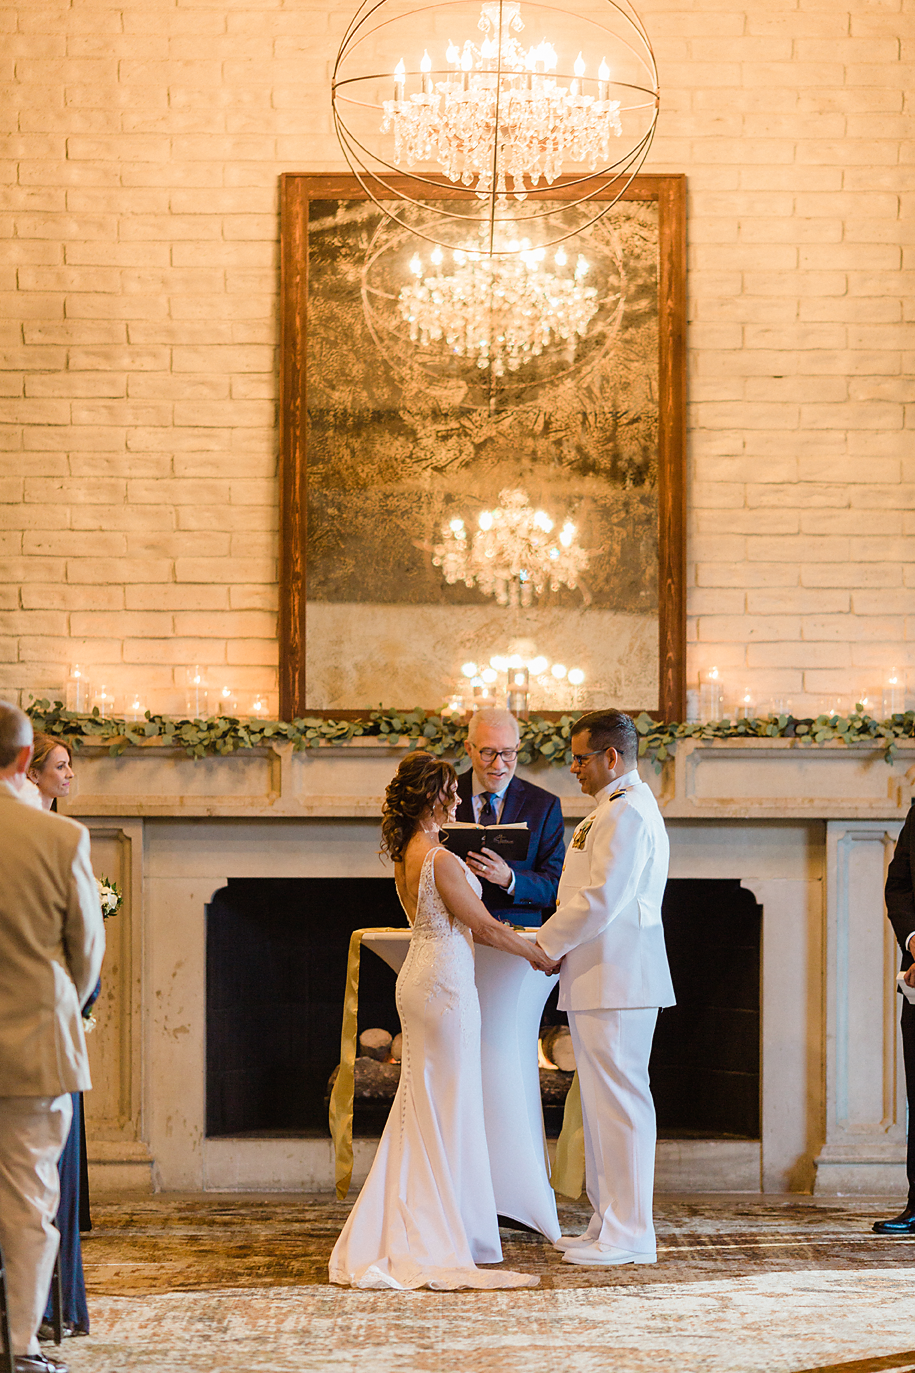 Dallas Wedding photographer Las Colinas Country Club ceremony Kate Marie Portraiture 2.png